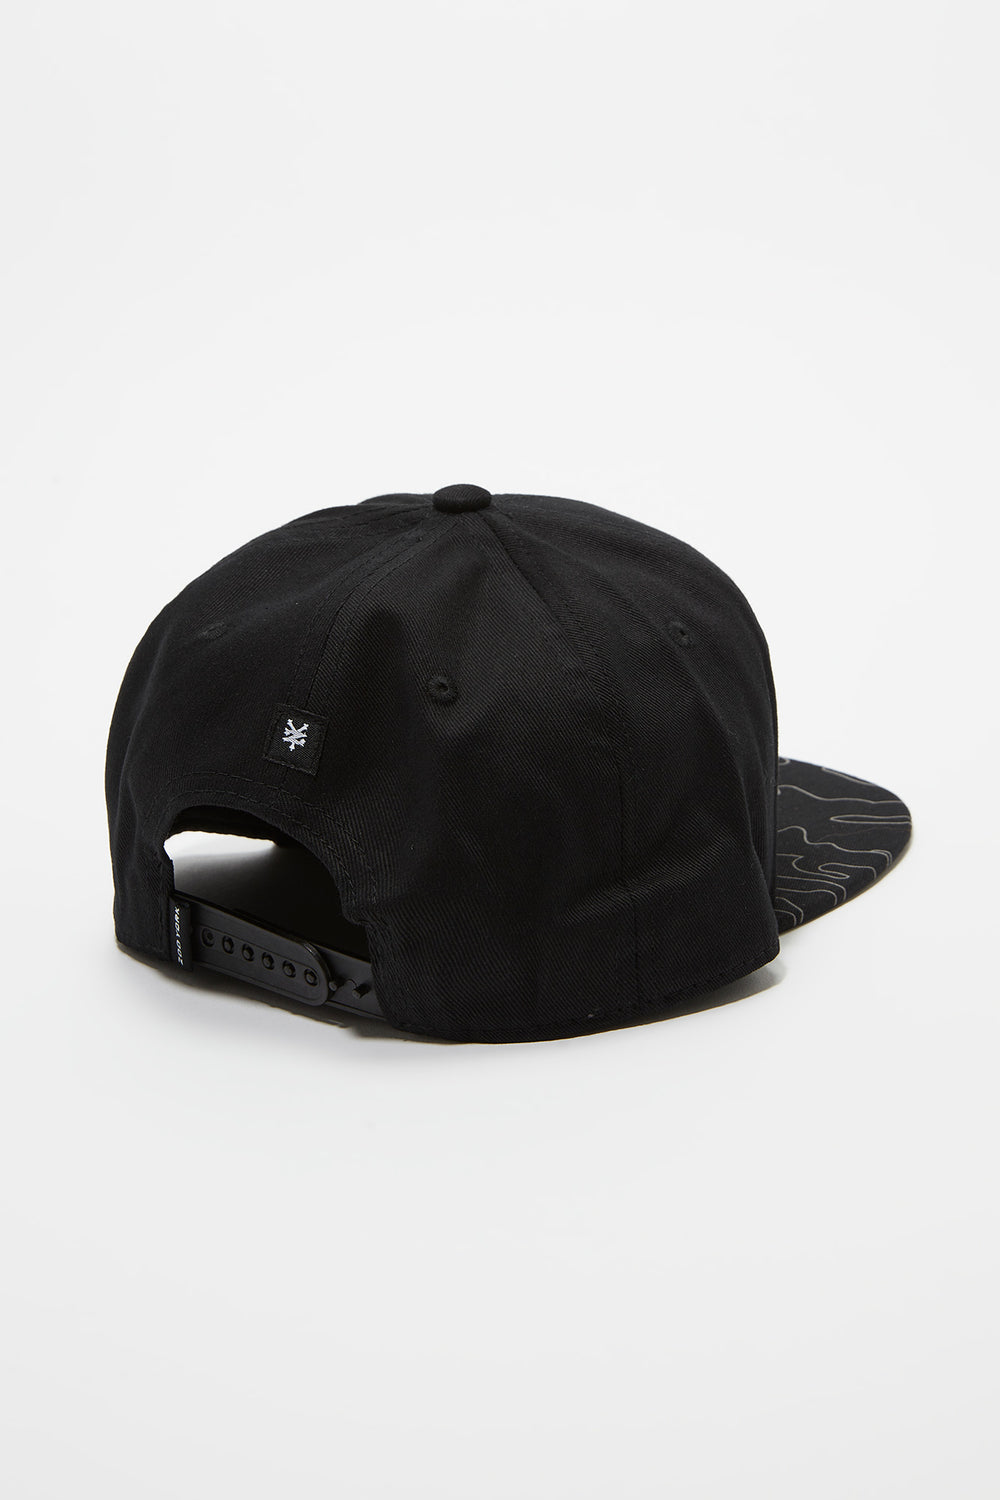 Zoo York Mens Reflective Snapback Buffalo Check